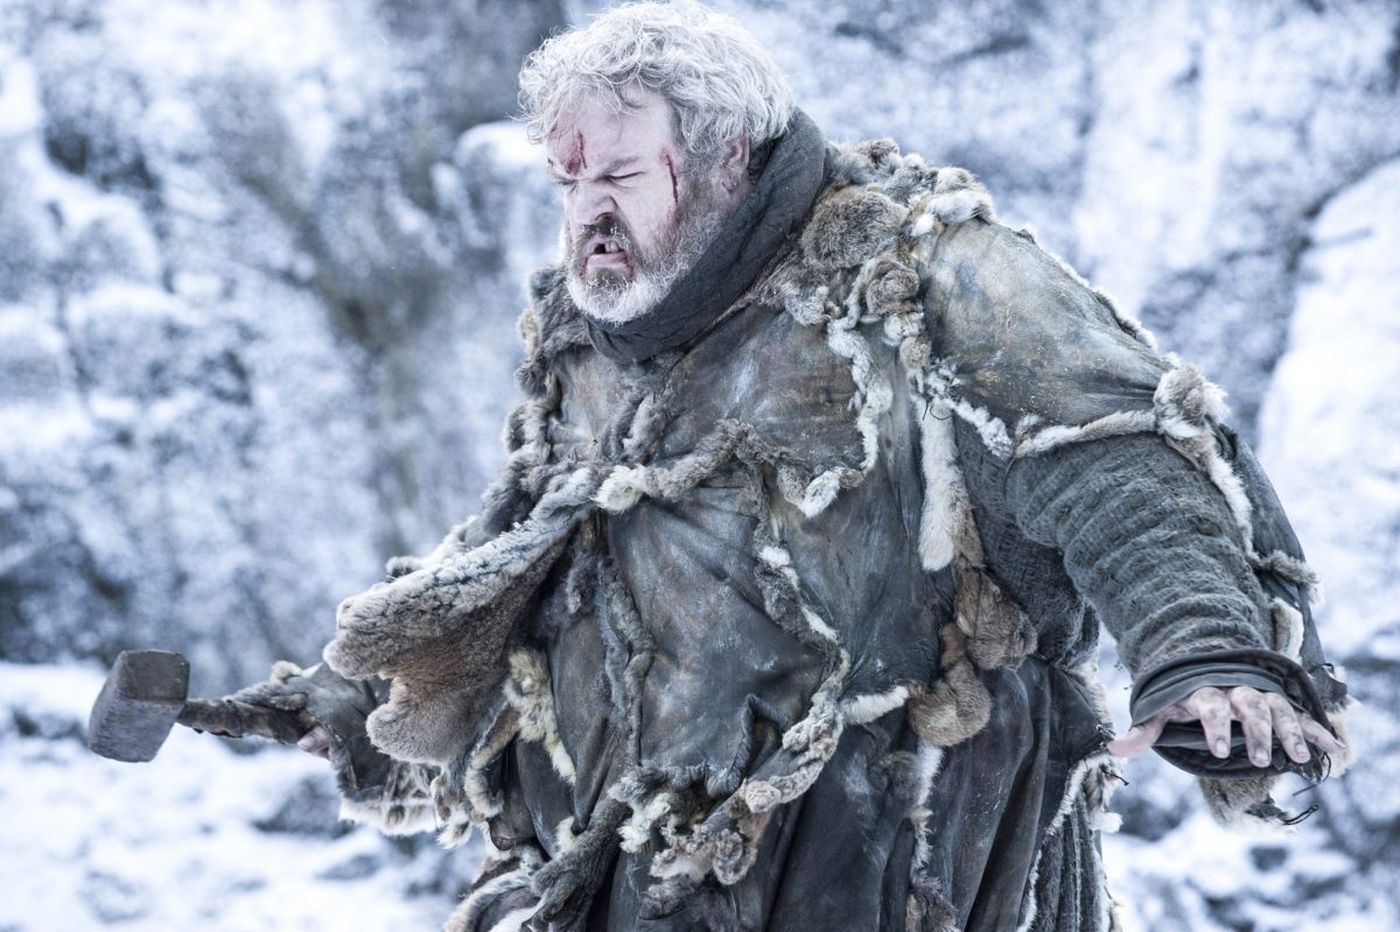 'Game of Thrones' beloved Hodor will DJ in Philly a day before the season finale